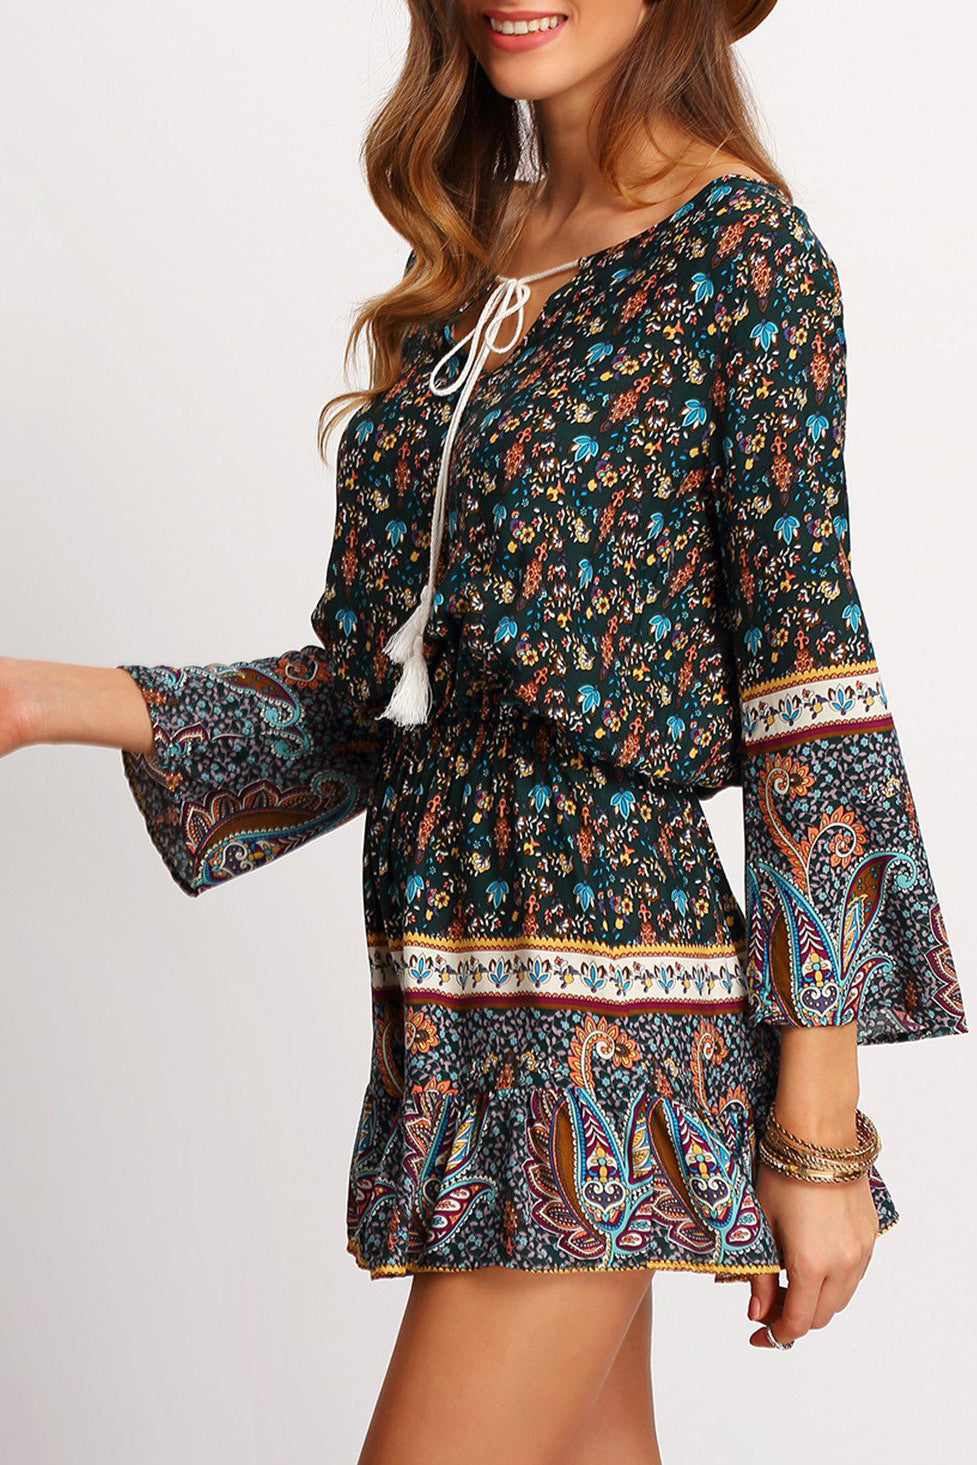 Chicloth Floral Printed Bohemian Dress - Chicloth